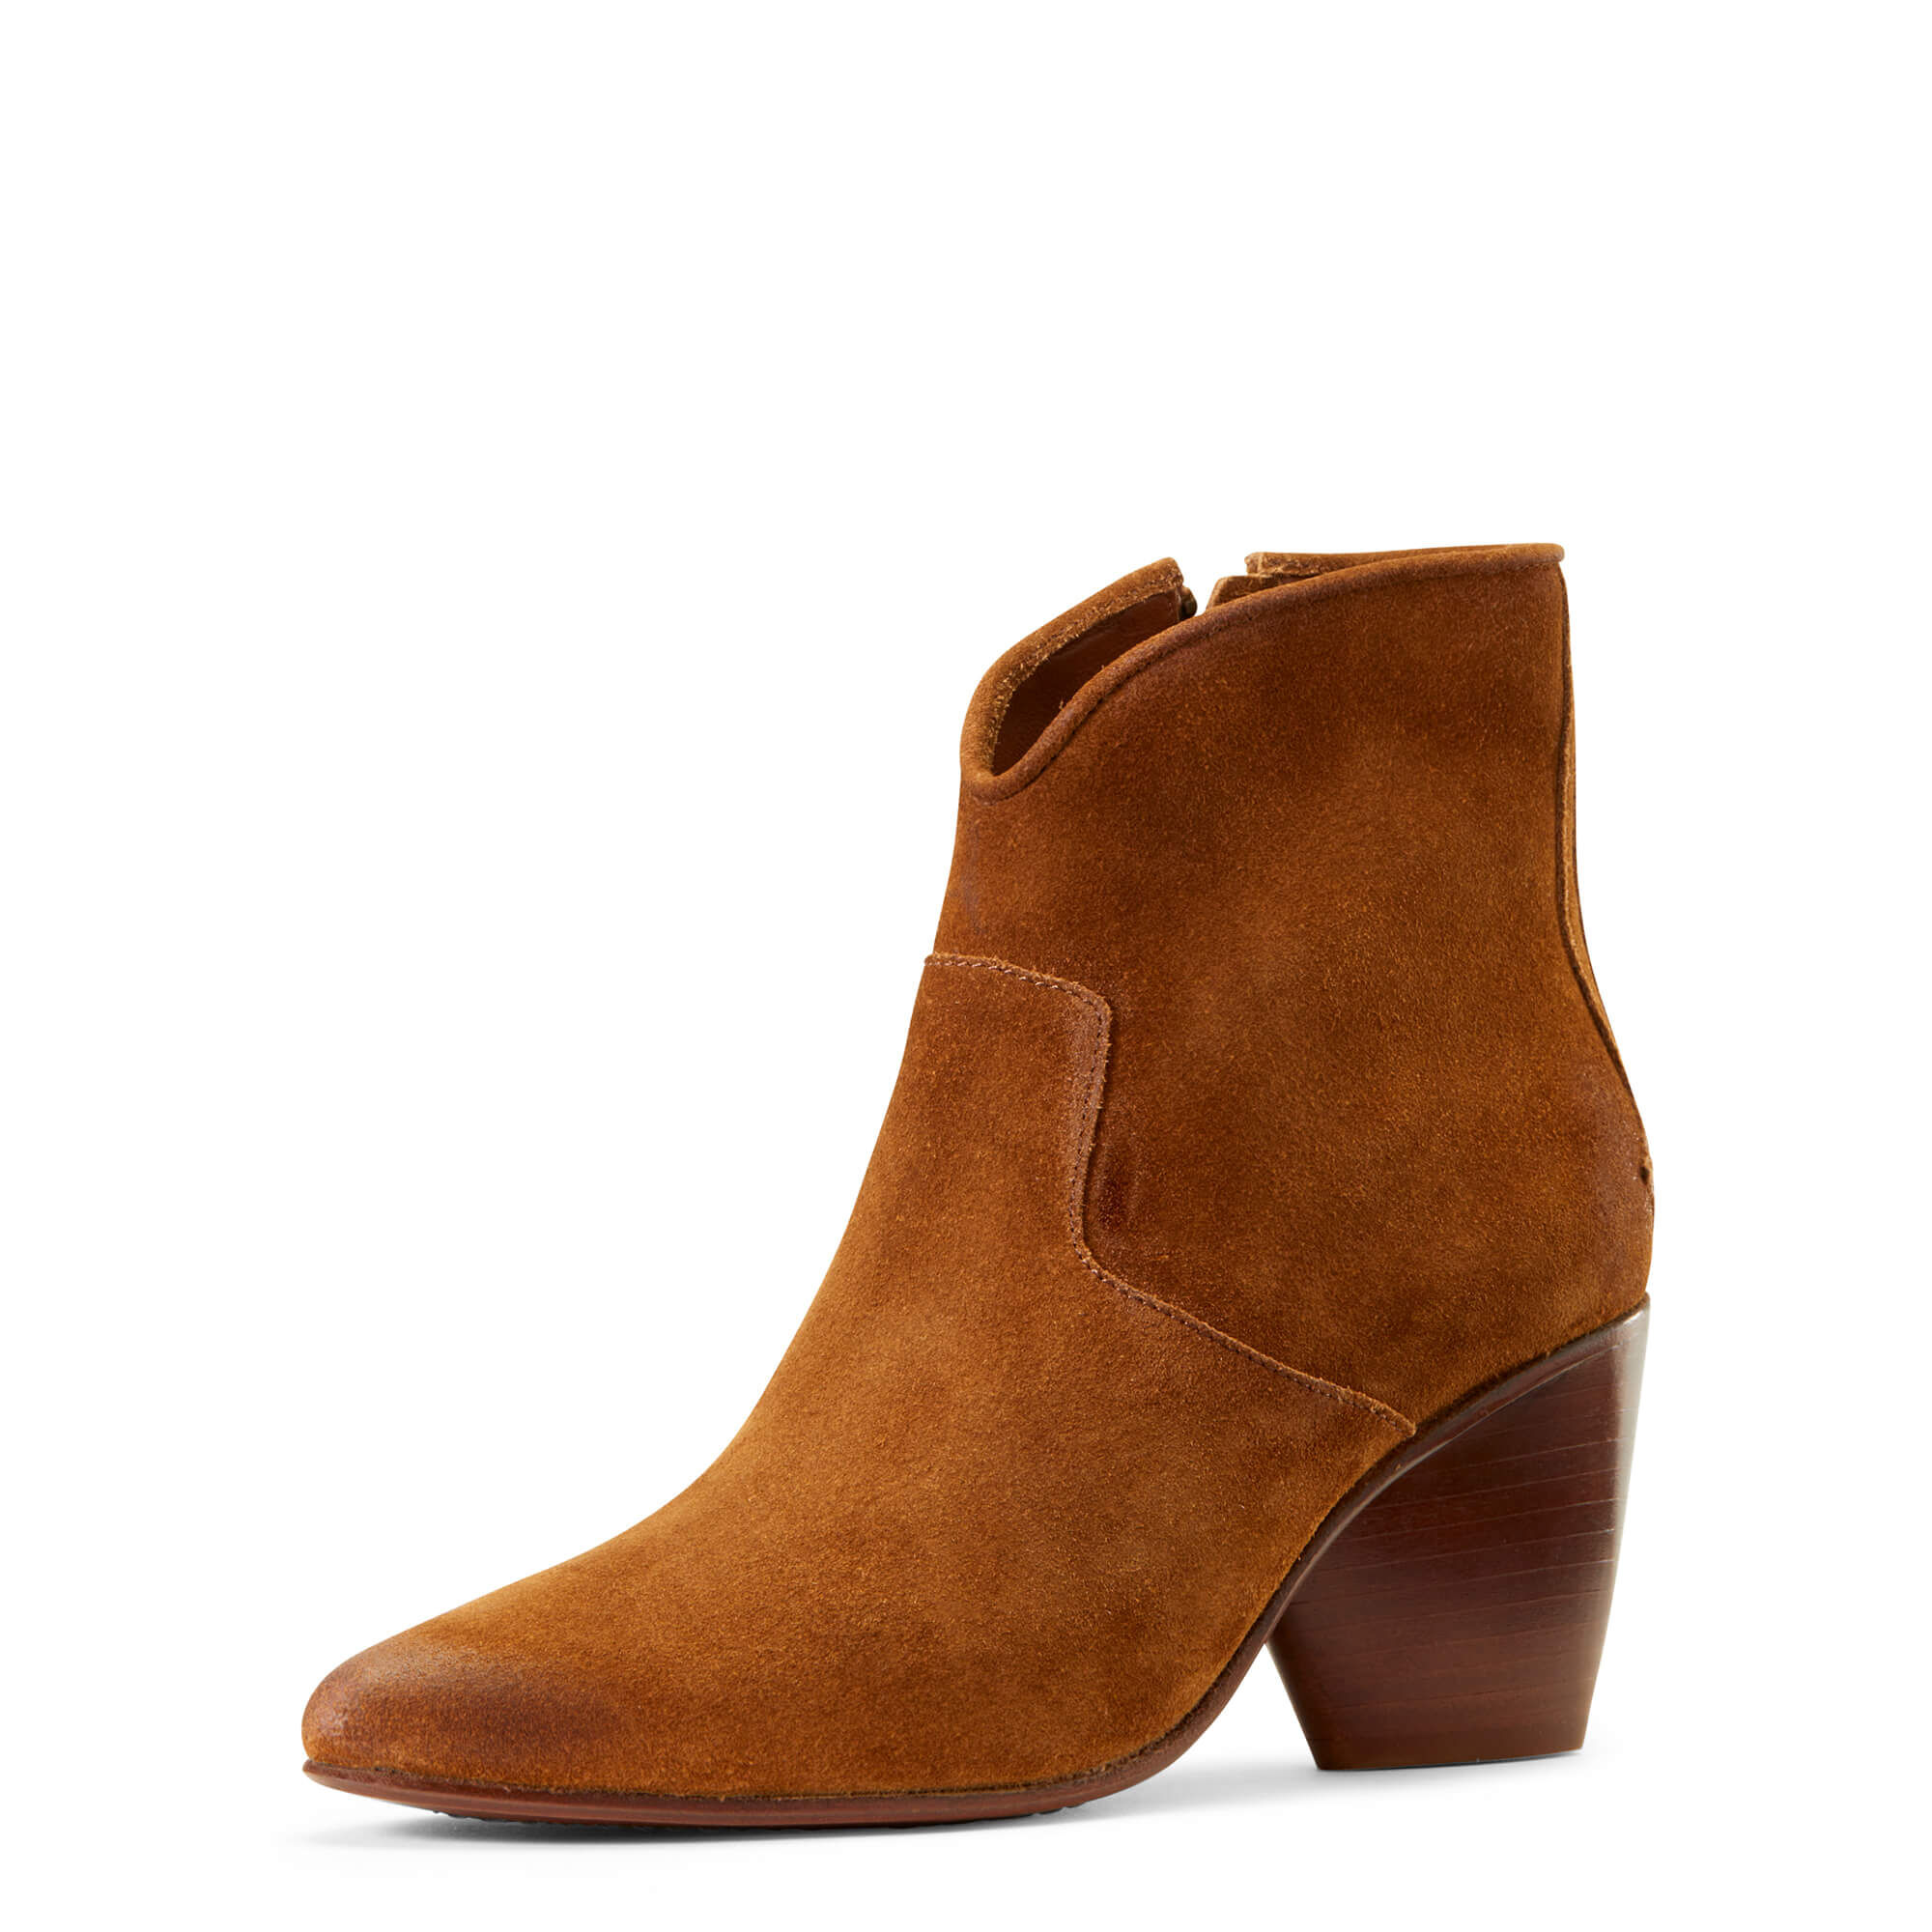 Women's Meadow Brook Ankle Boots in Saddle Suede Leather by Ariat Two24